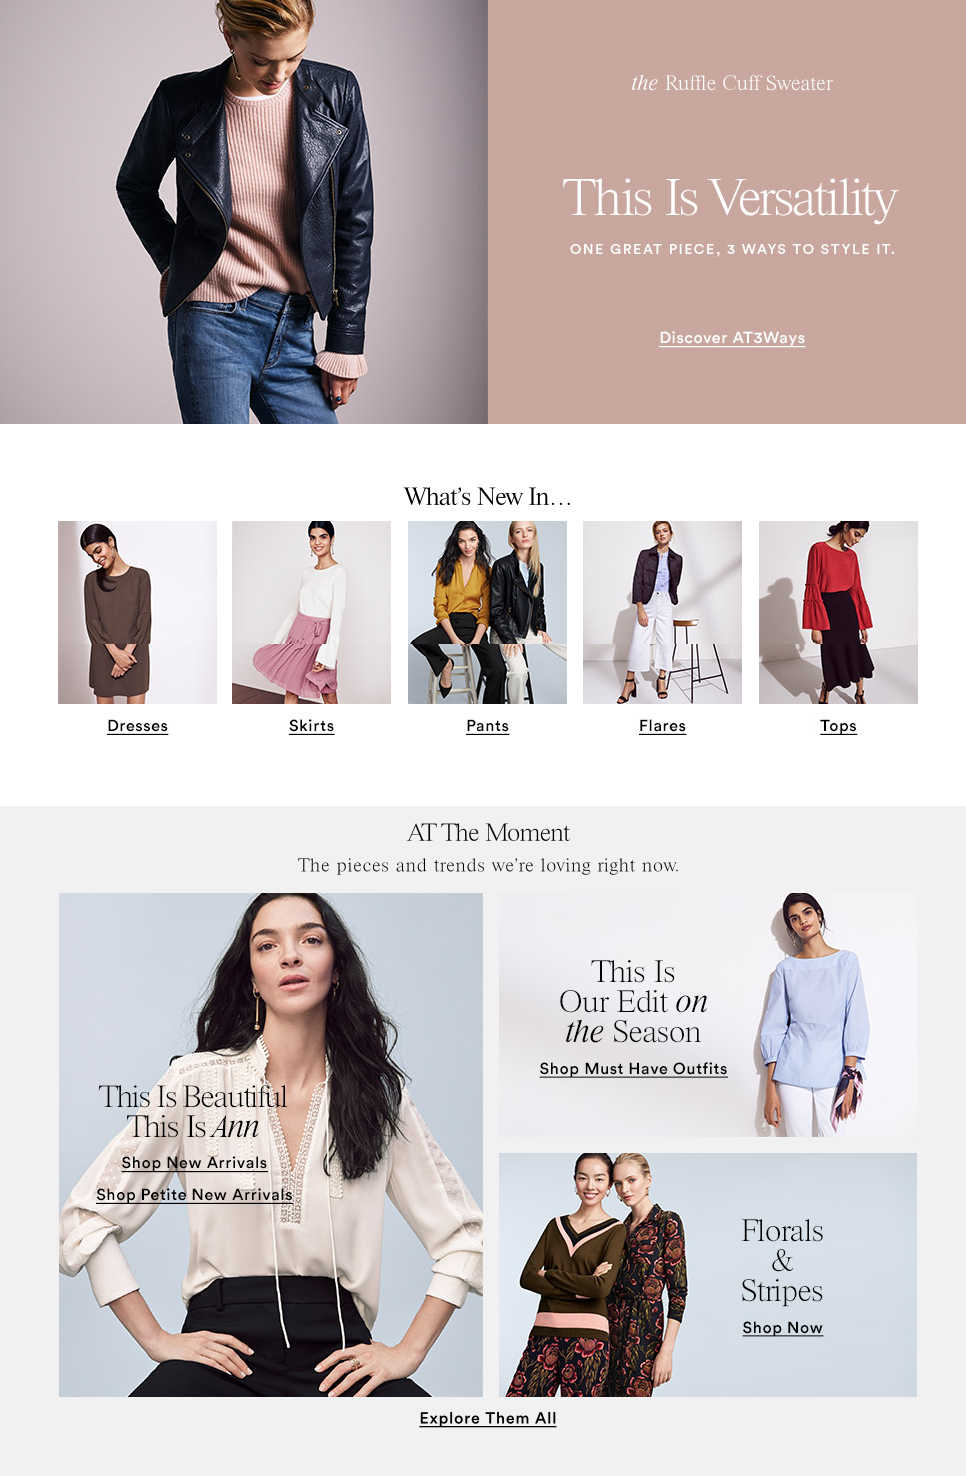 screencapture-anntaylor-1487174610532.png